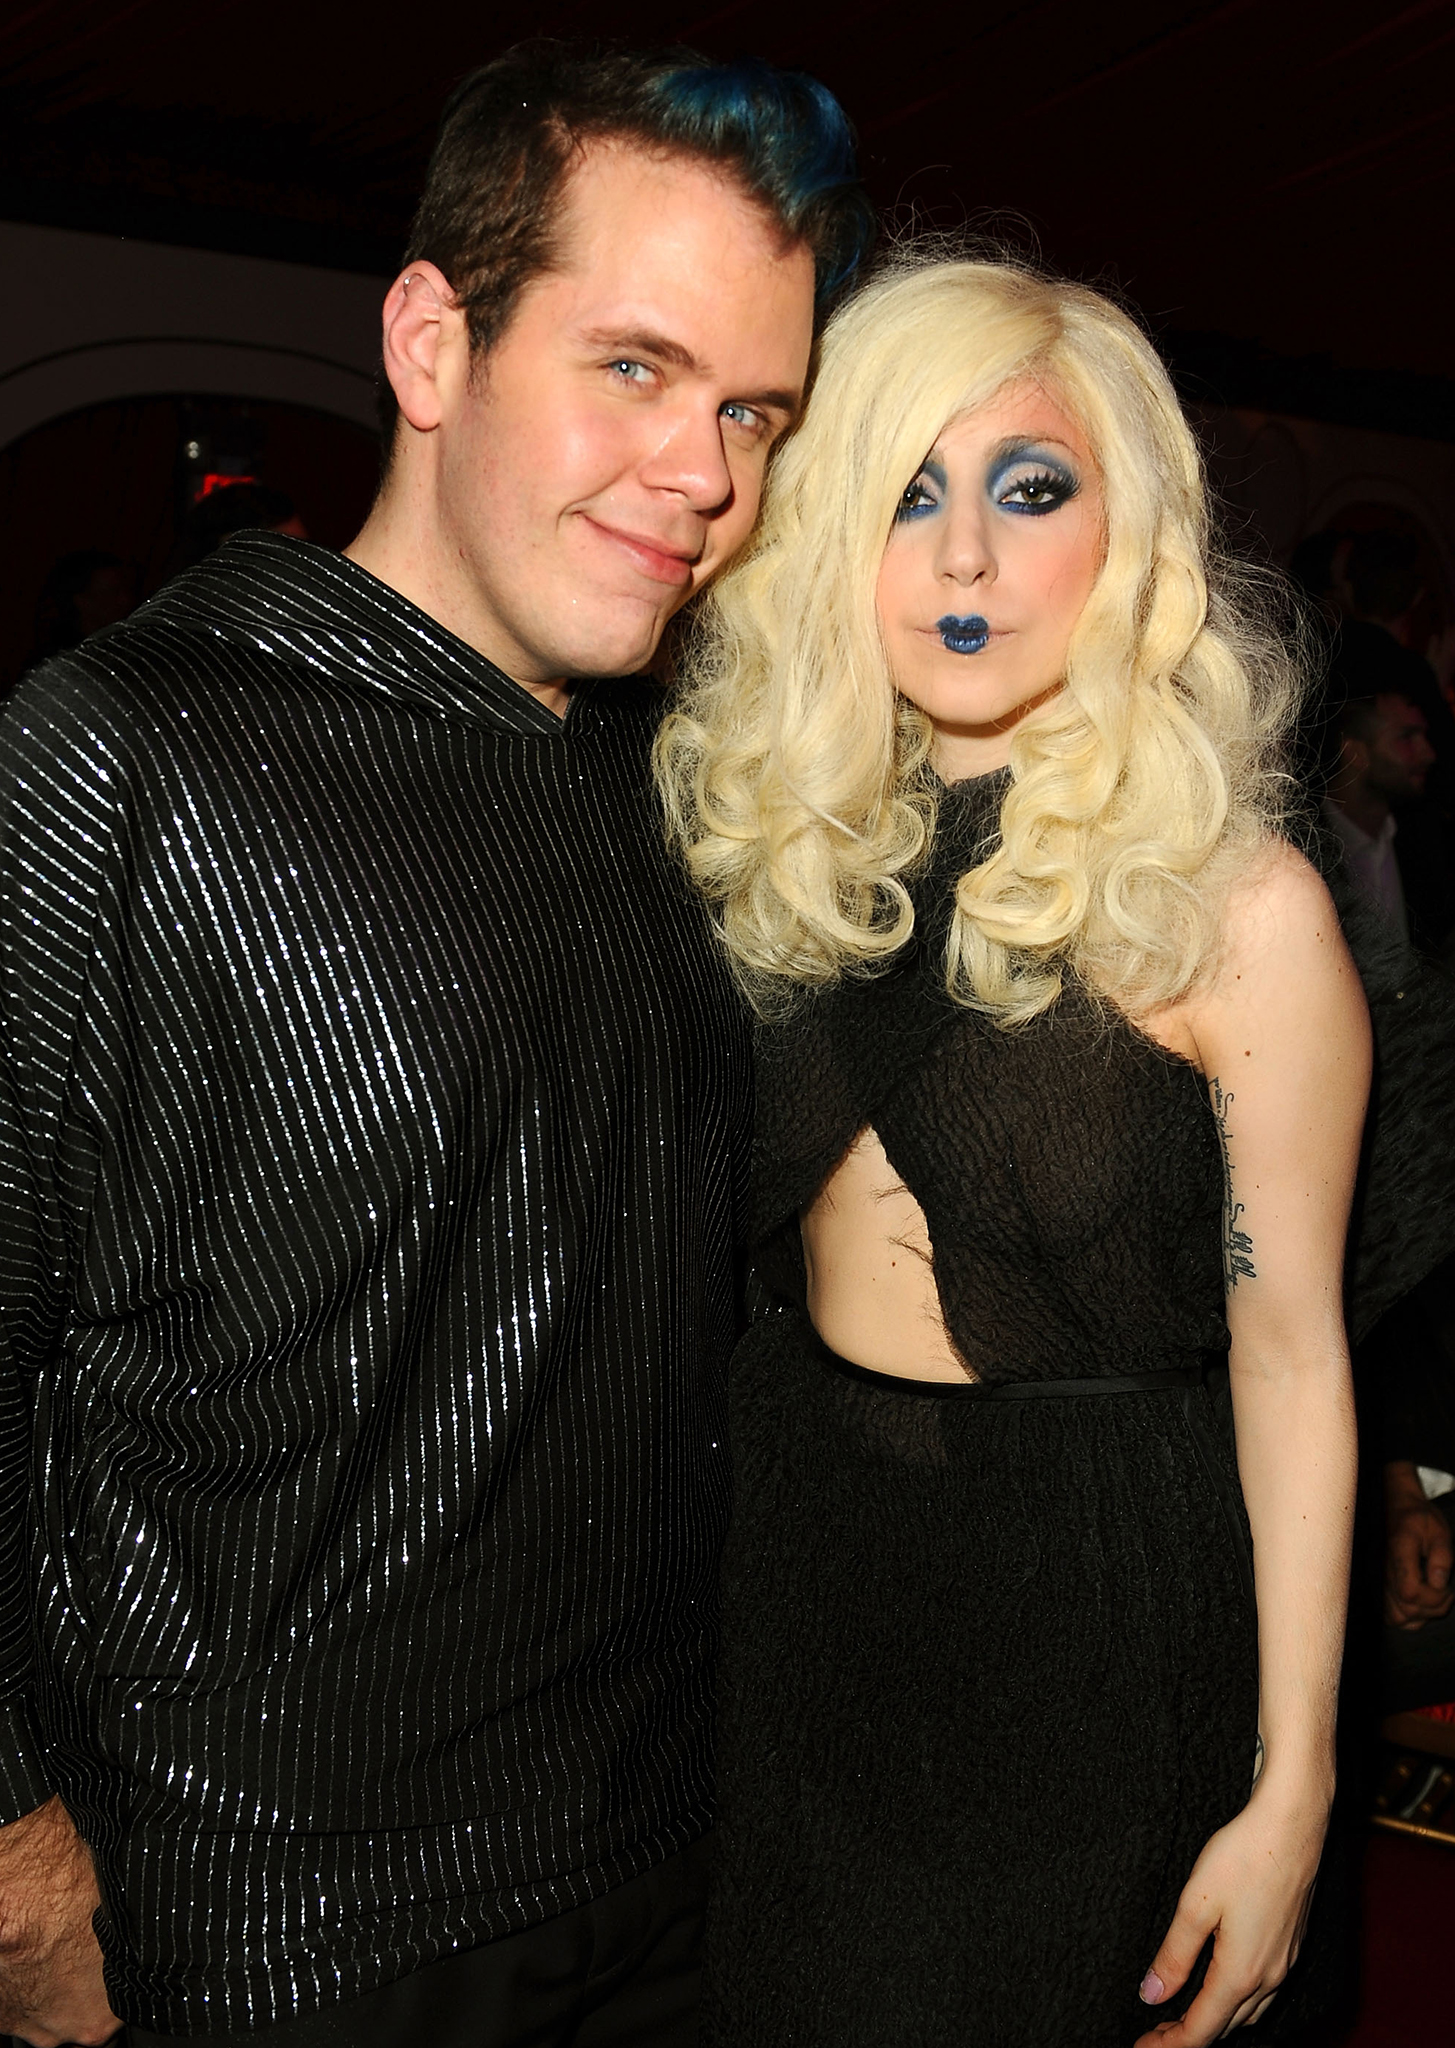 Perez Hilton and Lady Gaga in happier times (Getty Images)